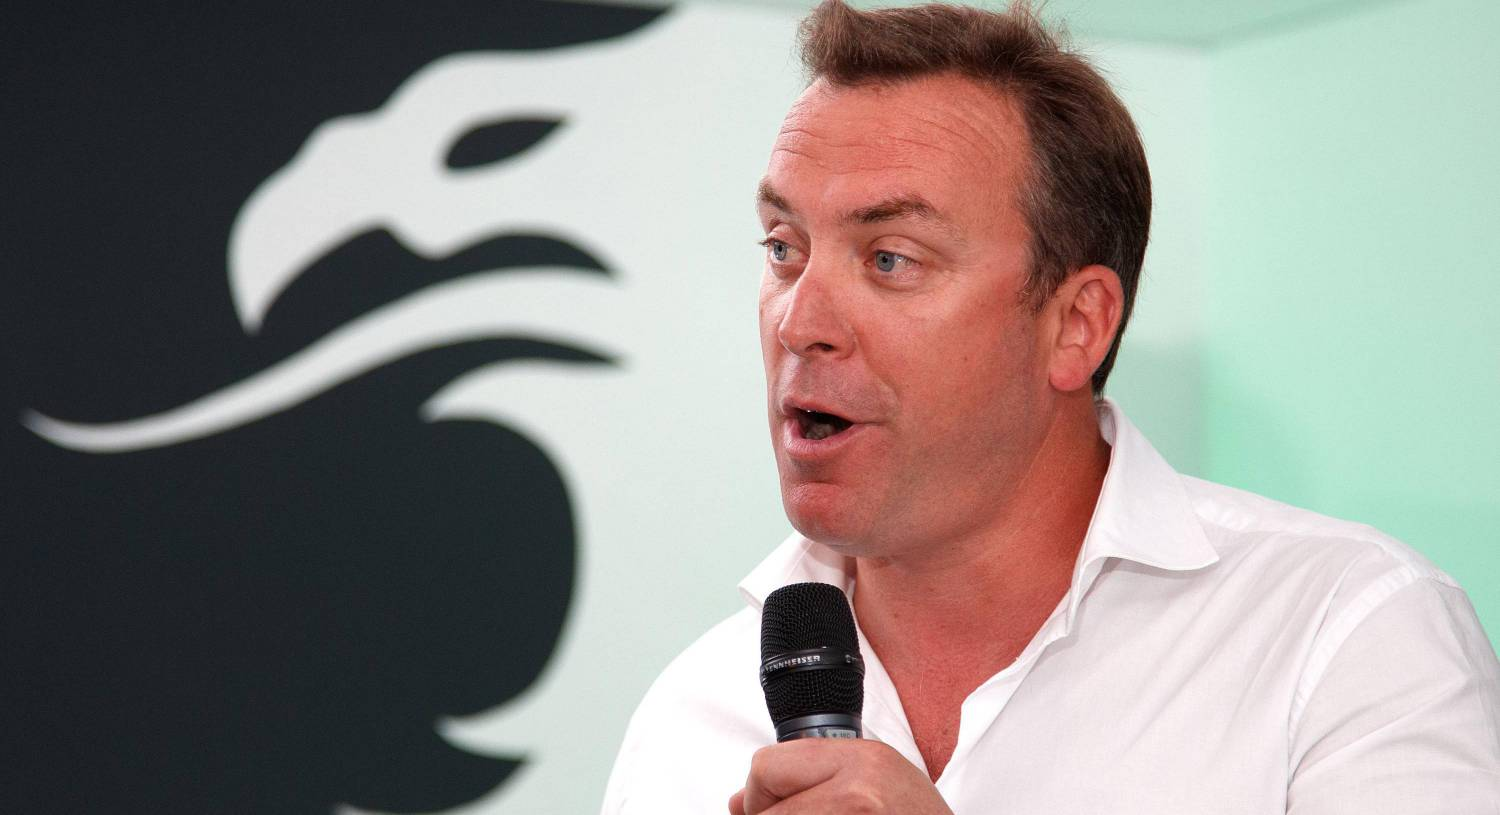 PRO14 confident of a resumption sometime in 2020